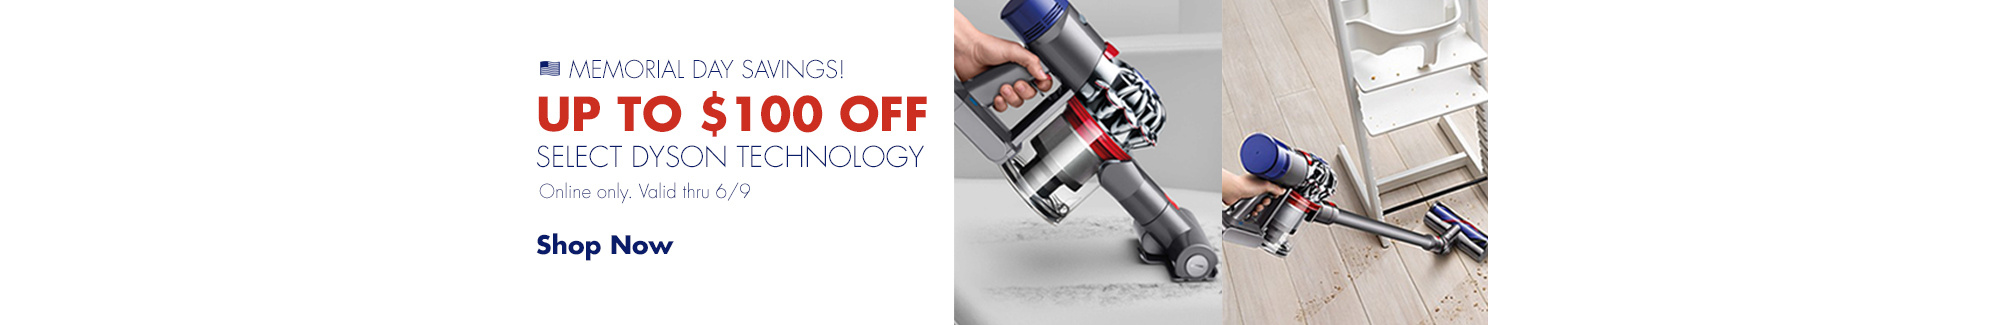 Memorial Day Dyson Deals. Up to $100 off select dyson